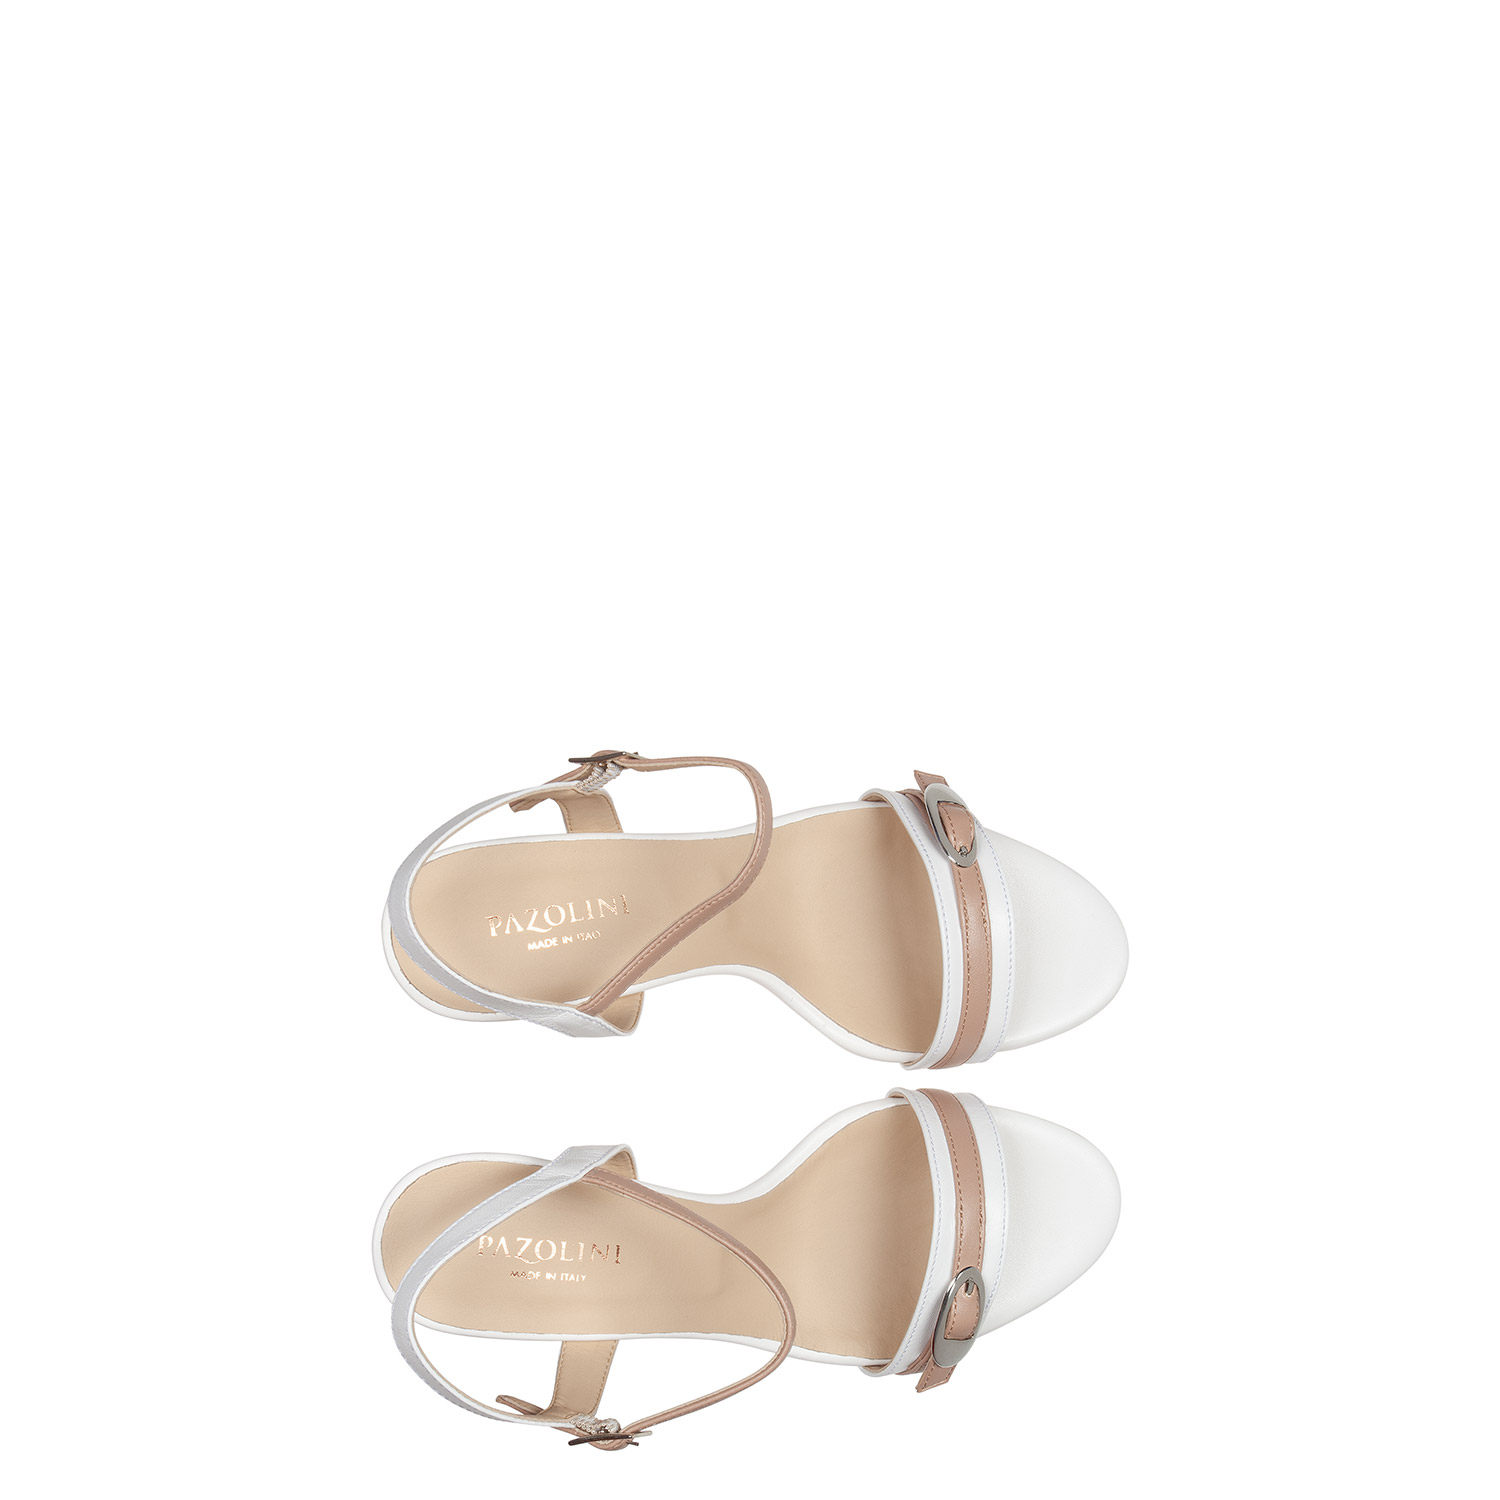 Women's sandals PAZOLINI AM-X1163-4